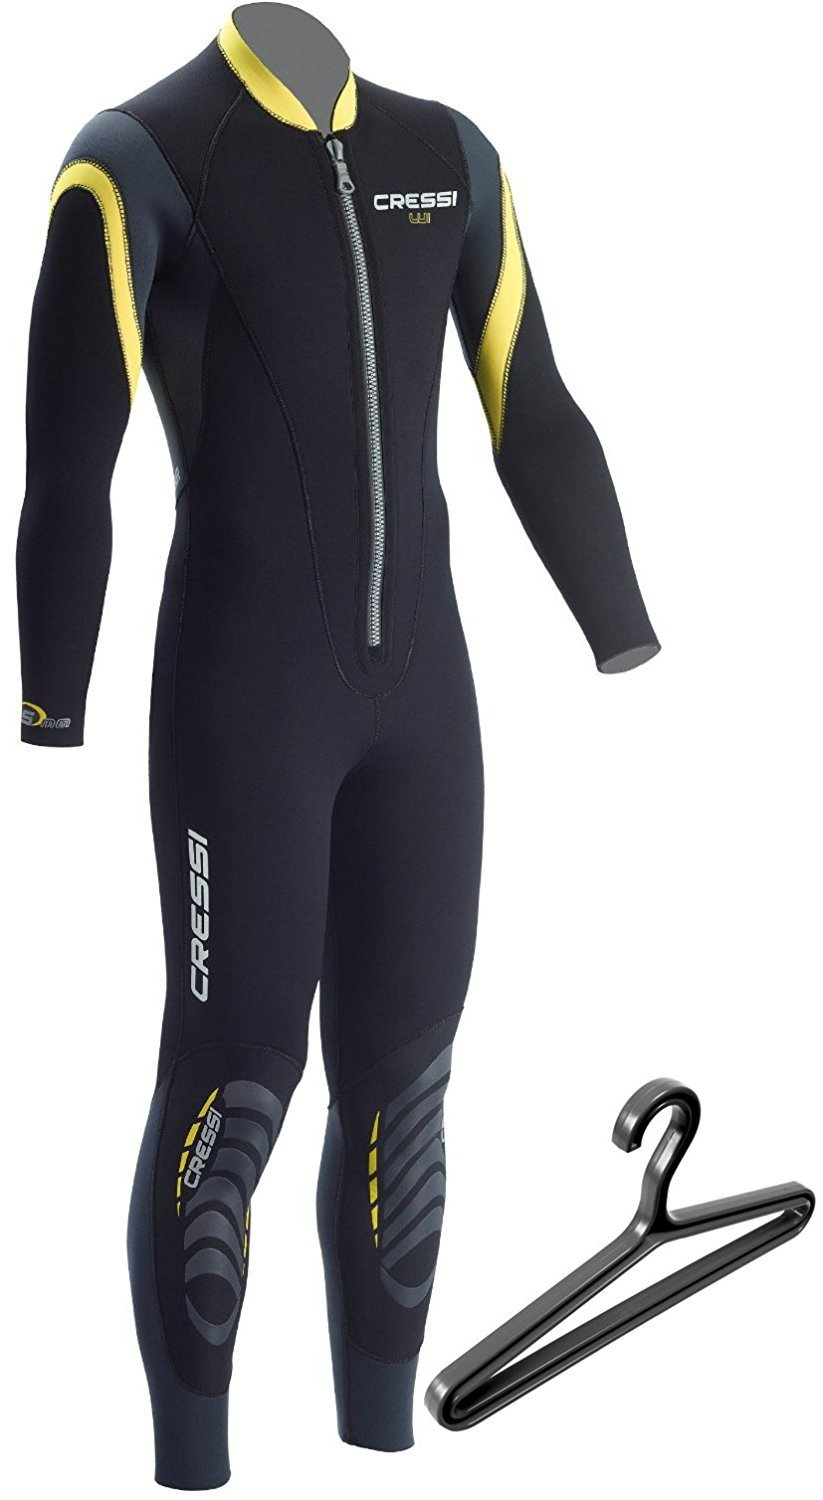 Buy Cressi Womens Lei 2.5mm Neoprene Wetsuit Wetsuit All in One in ... 1f0b16599